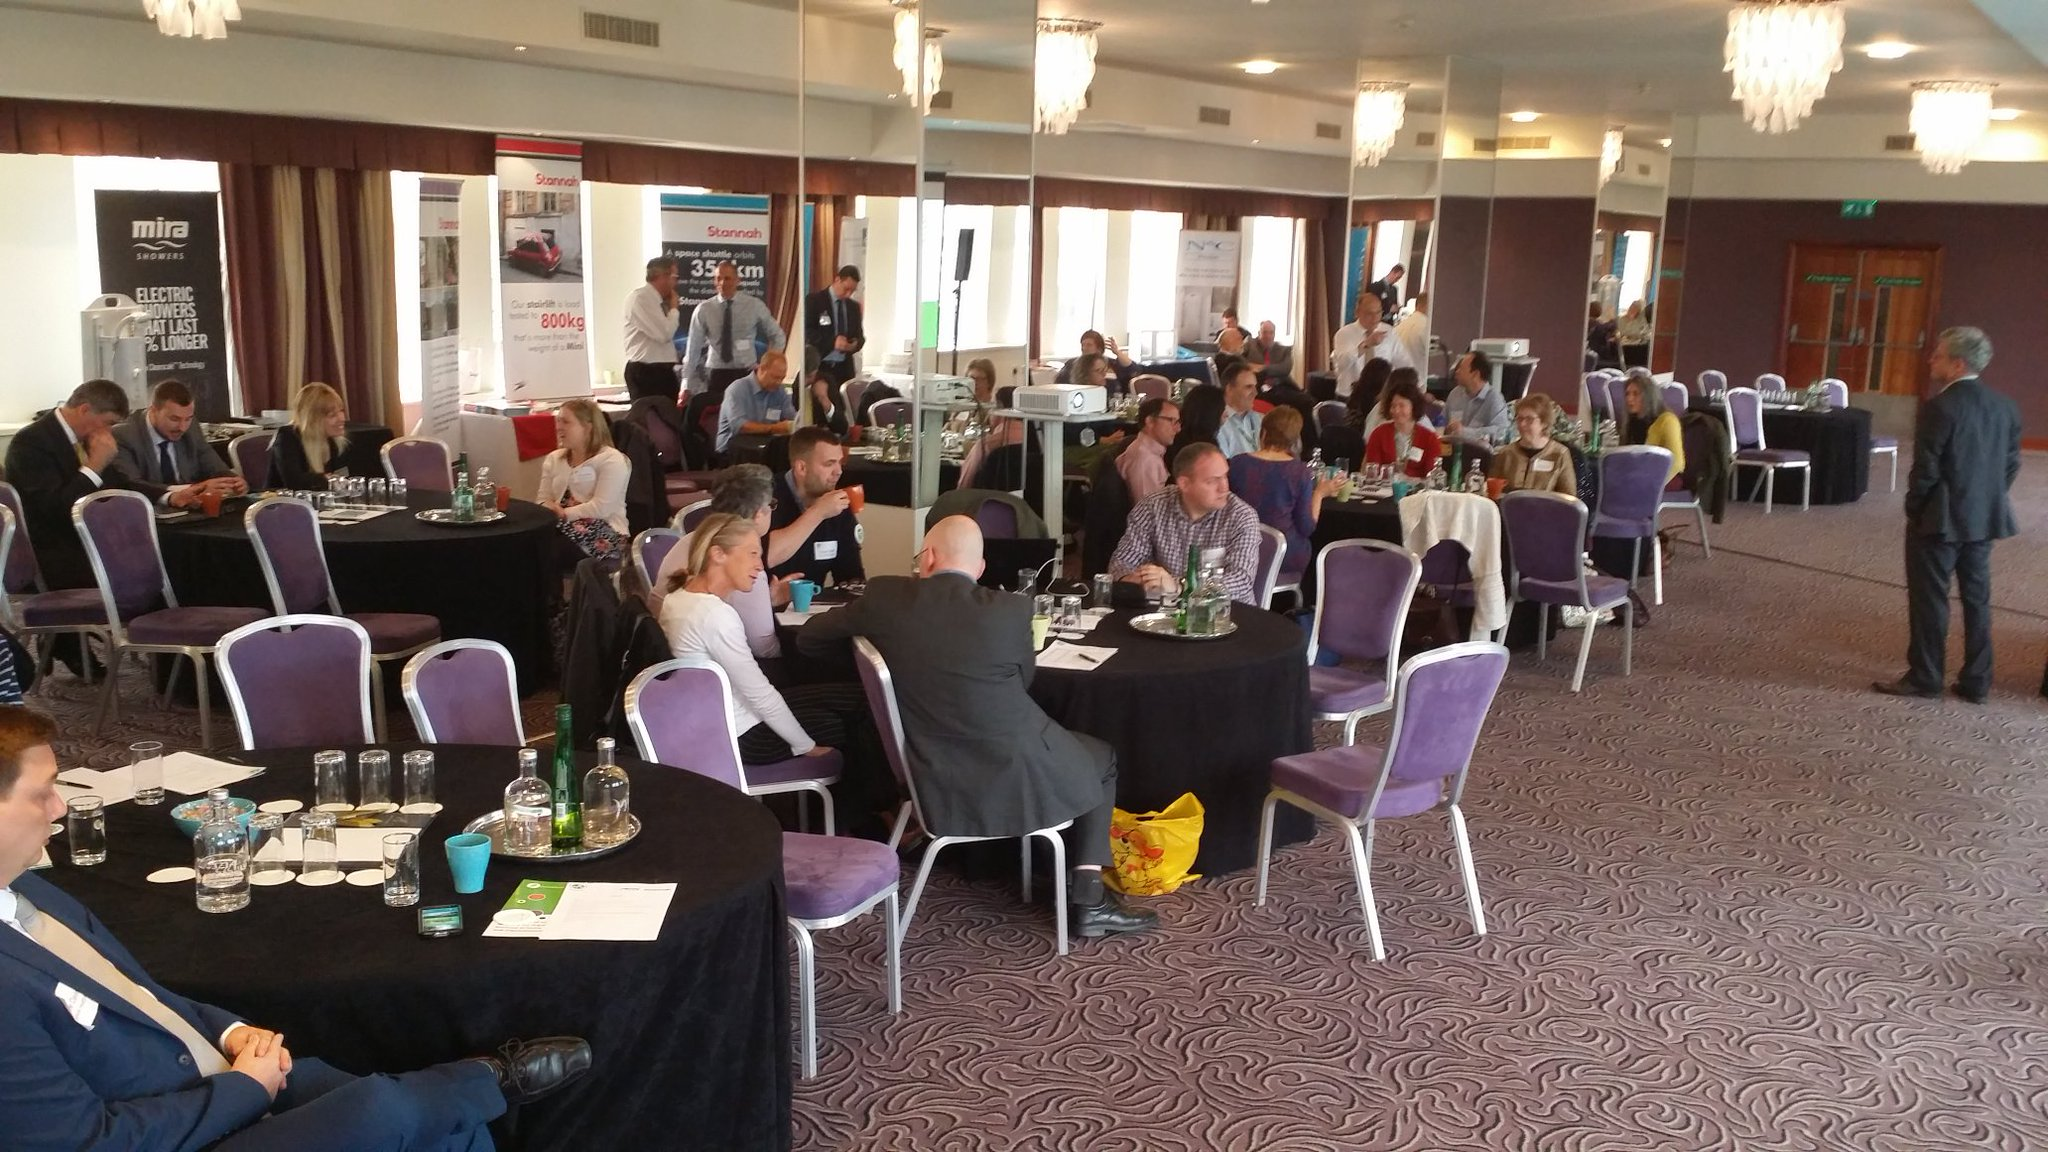 Bristol @FoundationsHIA  DFG Roadshow about to kick off. Great to see so many are making better use of growing allocations #DFGChampions https://t.co/C4QUxcT56U